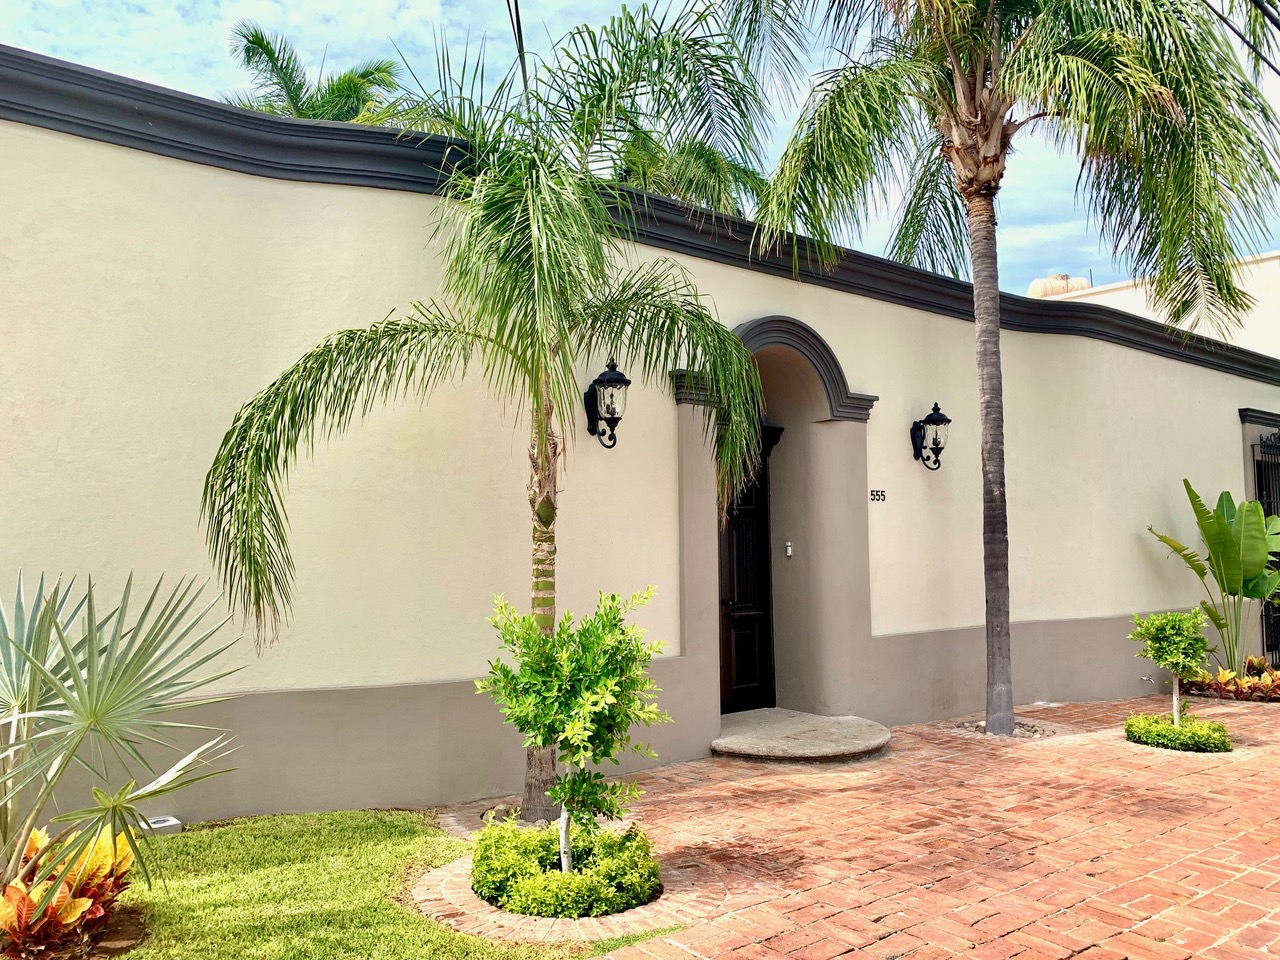 Main entrance to Hacienda El Dorado.